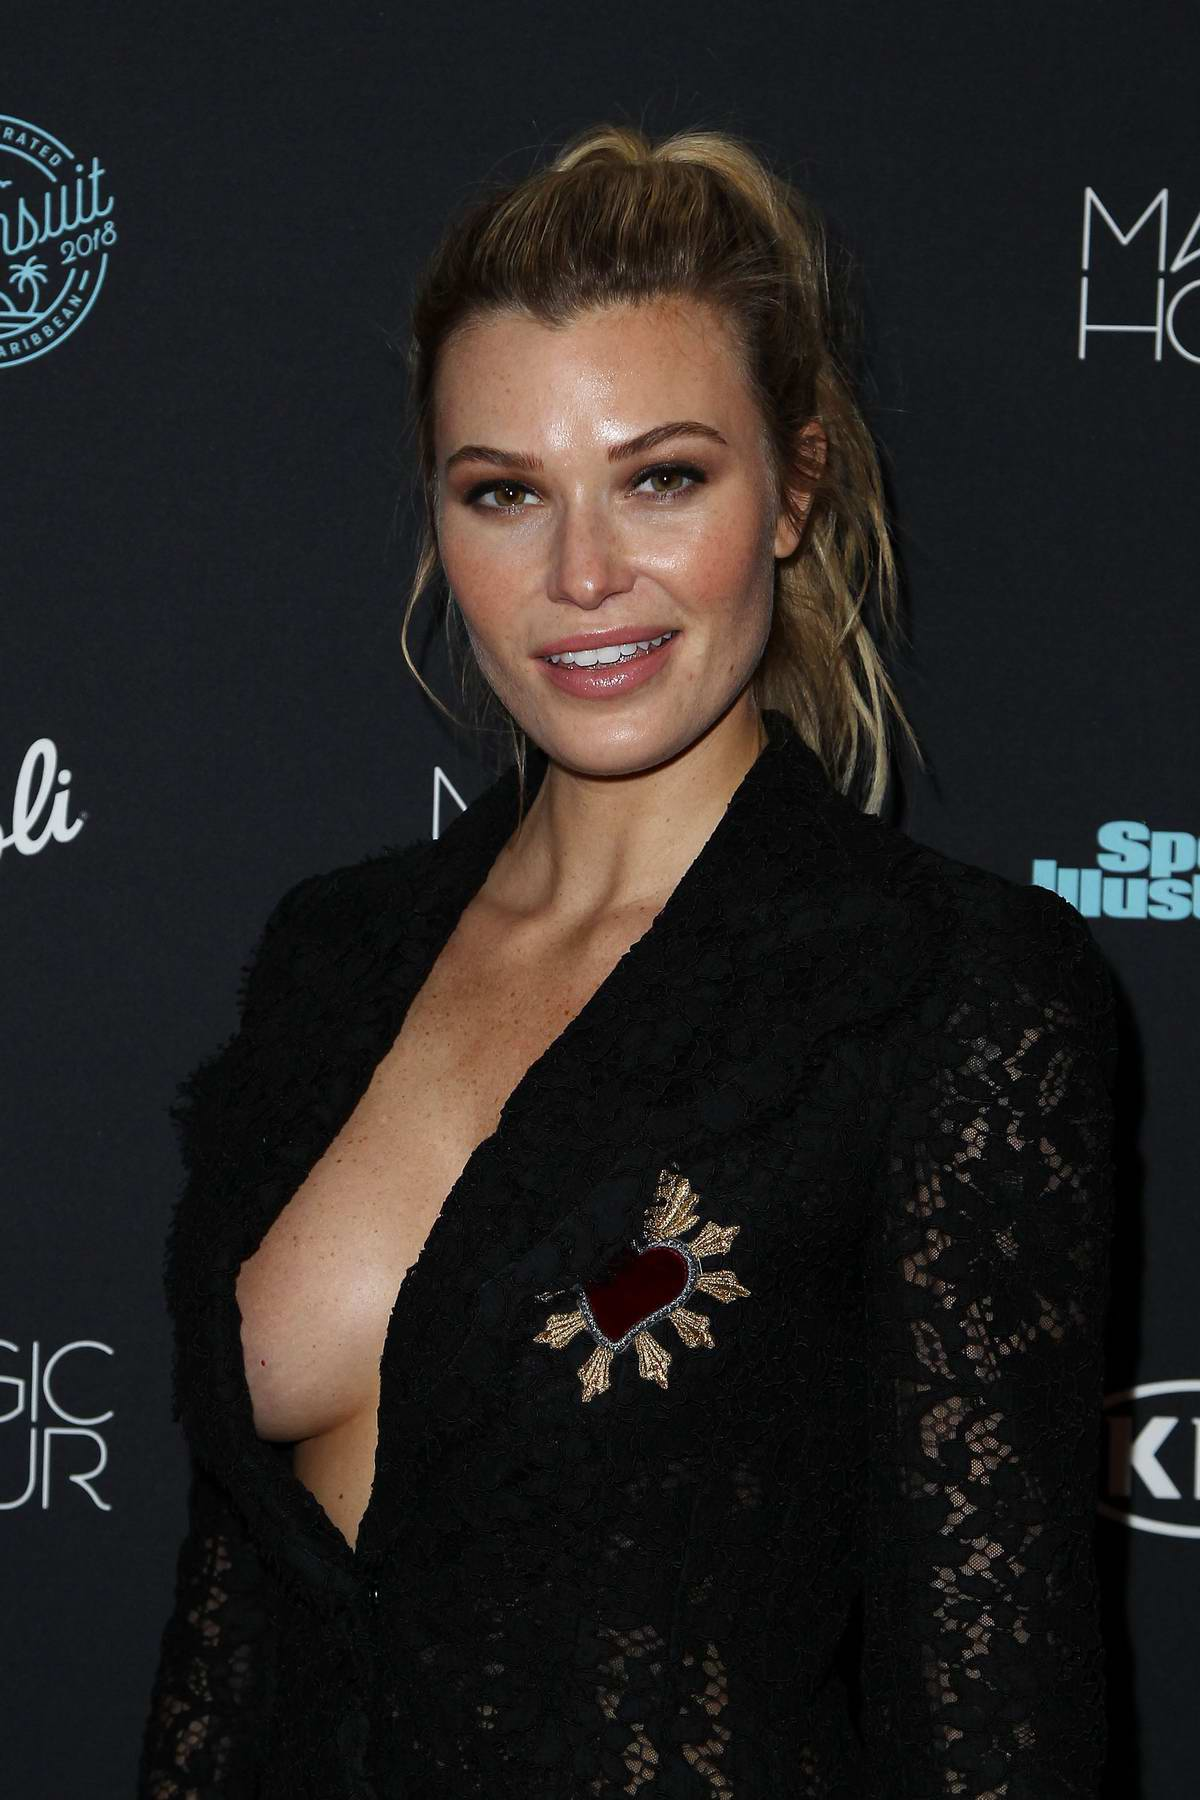 Samantha Hoopes attends Sports Illustrated Swimsuit 2018 Launch Event in New York City